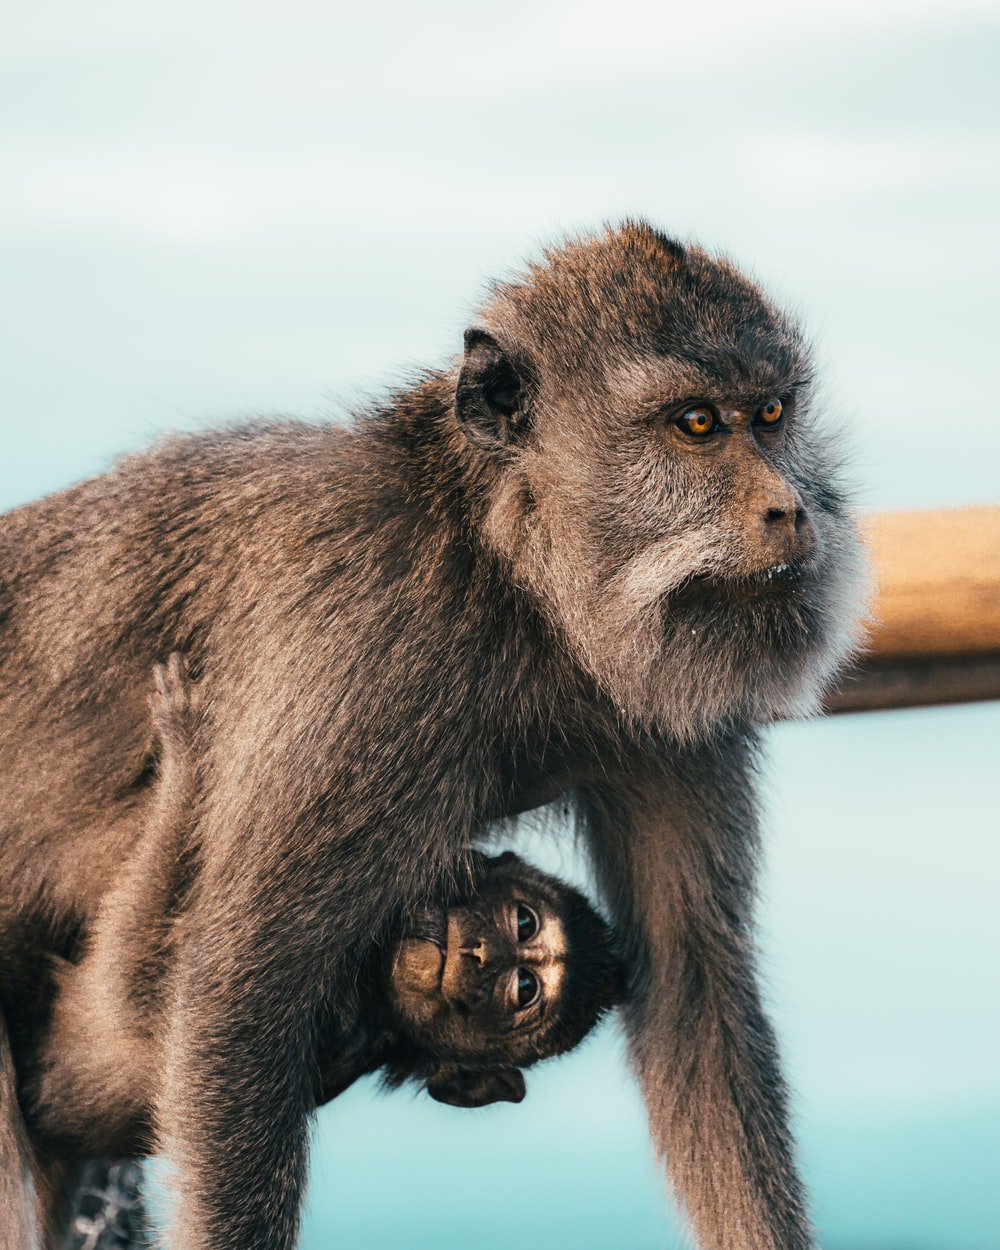 brown monkey sitting on brown wooden fence during daytime